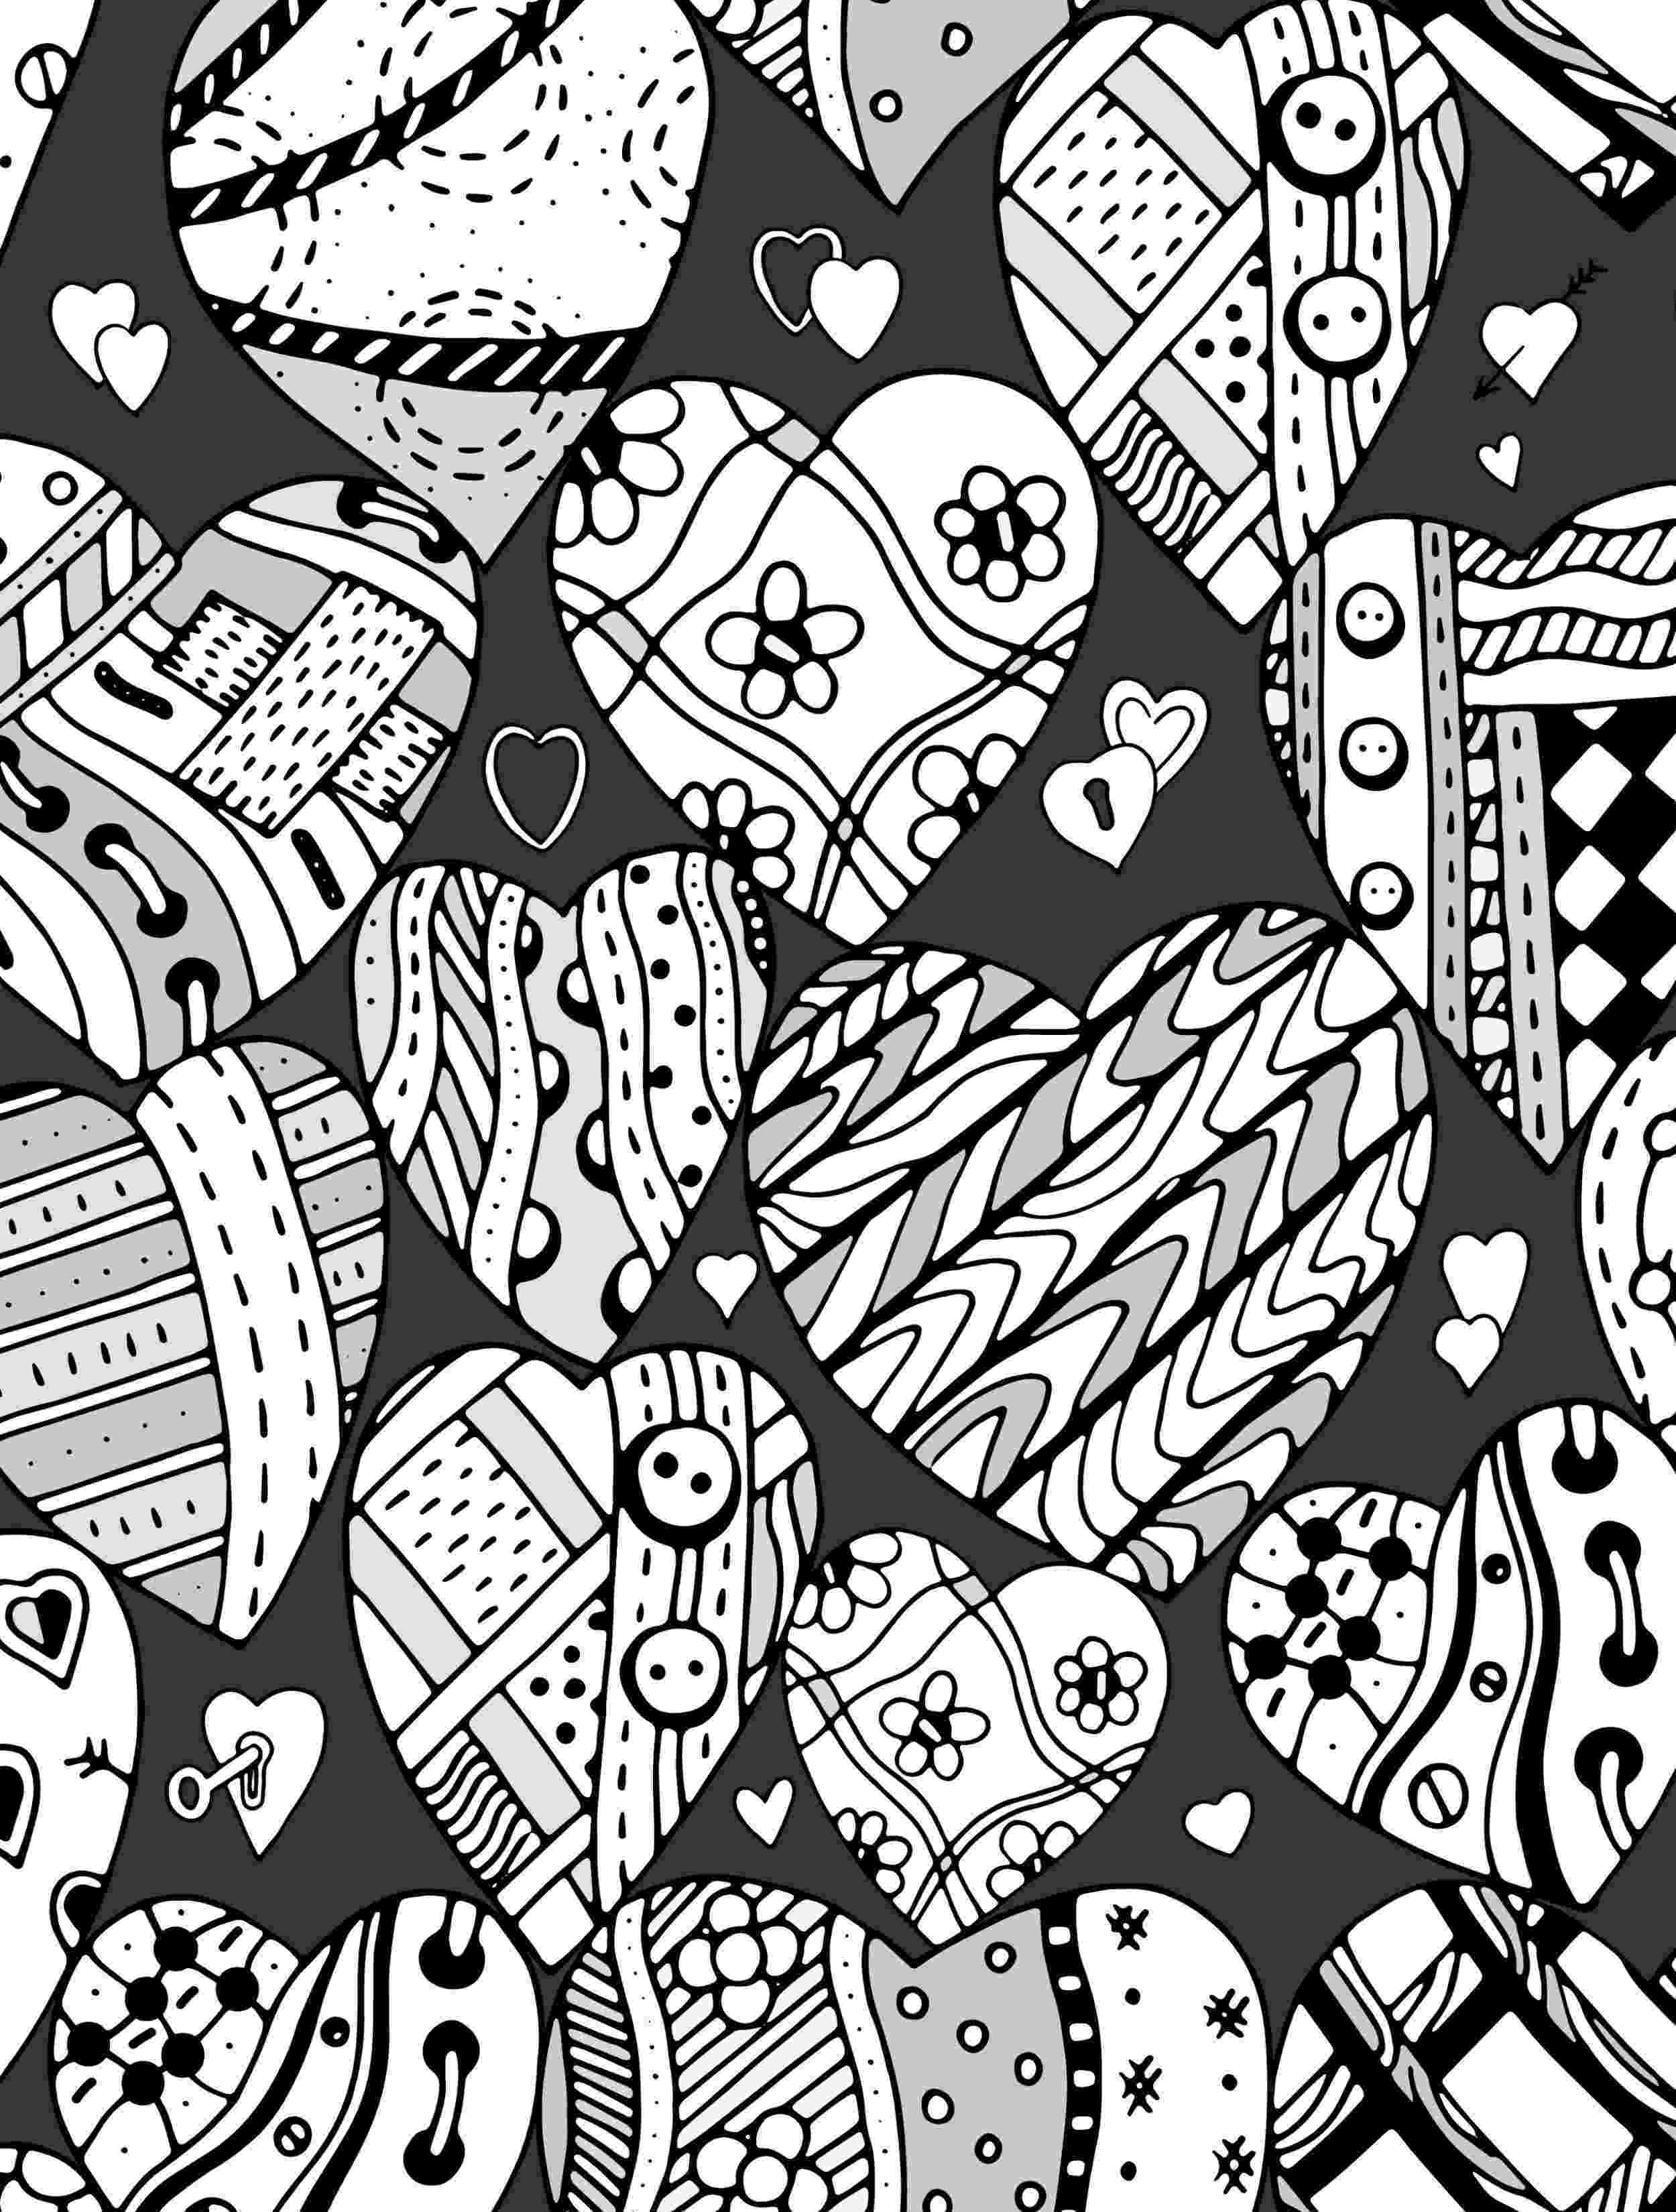 coloring book for adults beautiful day nymph printable adult coloring page from favoreads coloring beautiful book adults day for coloring